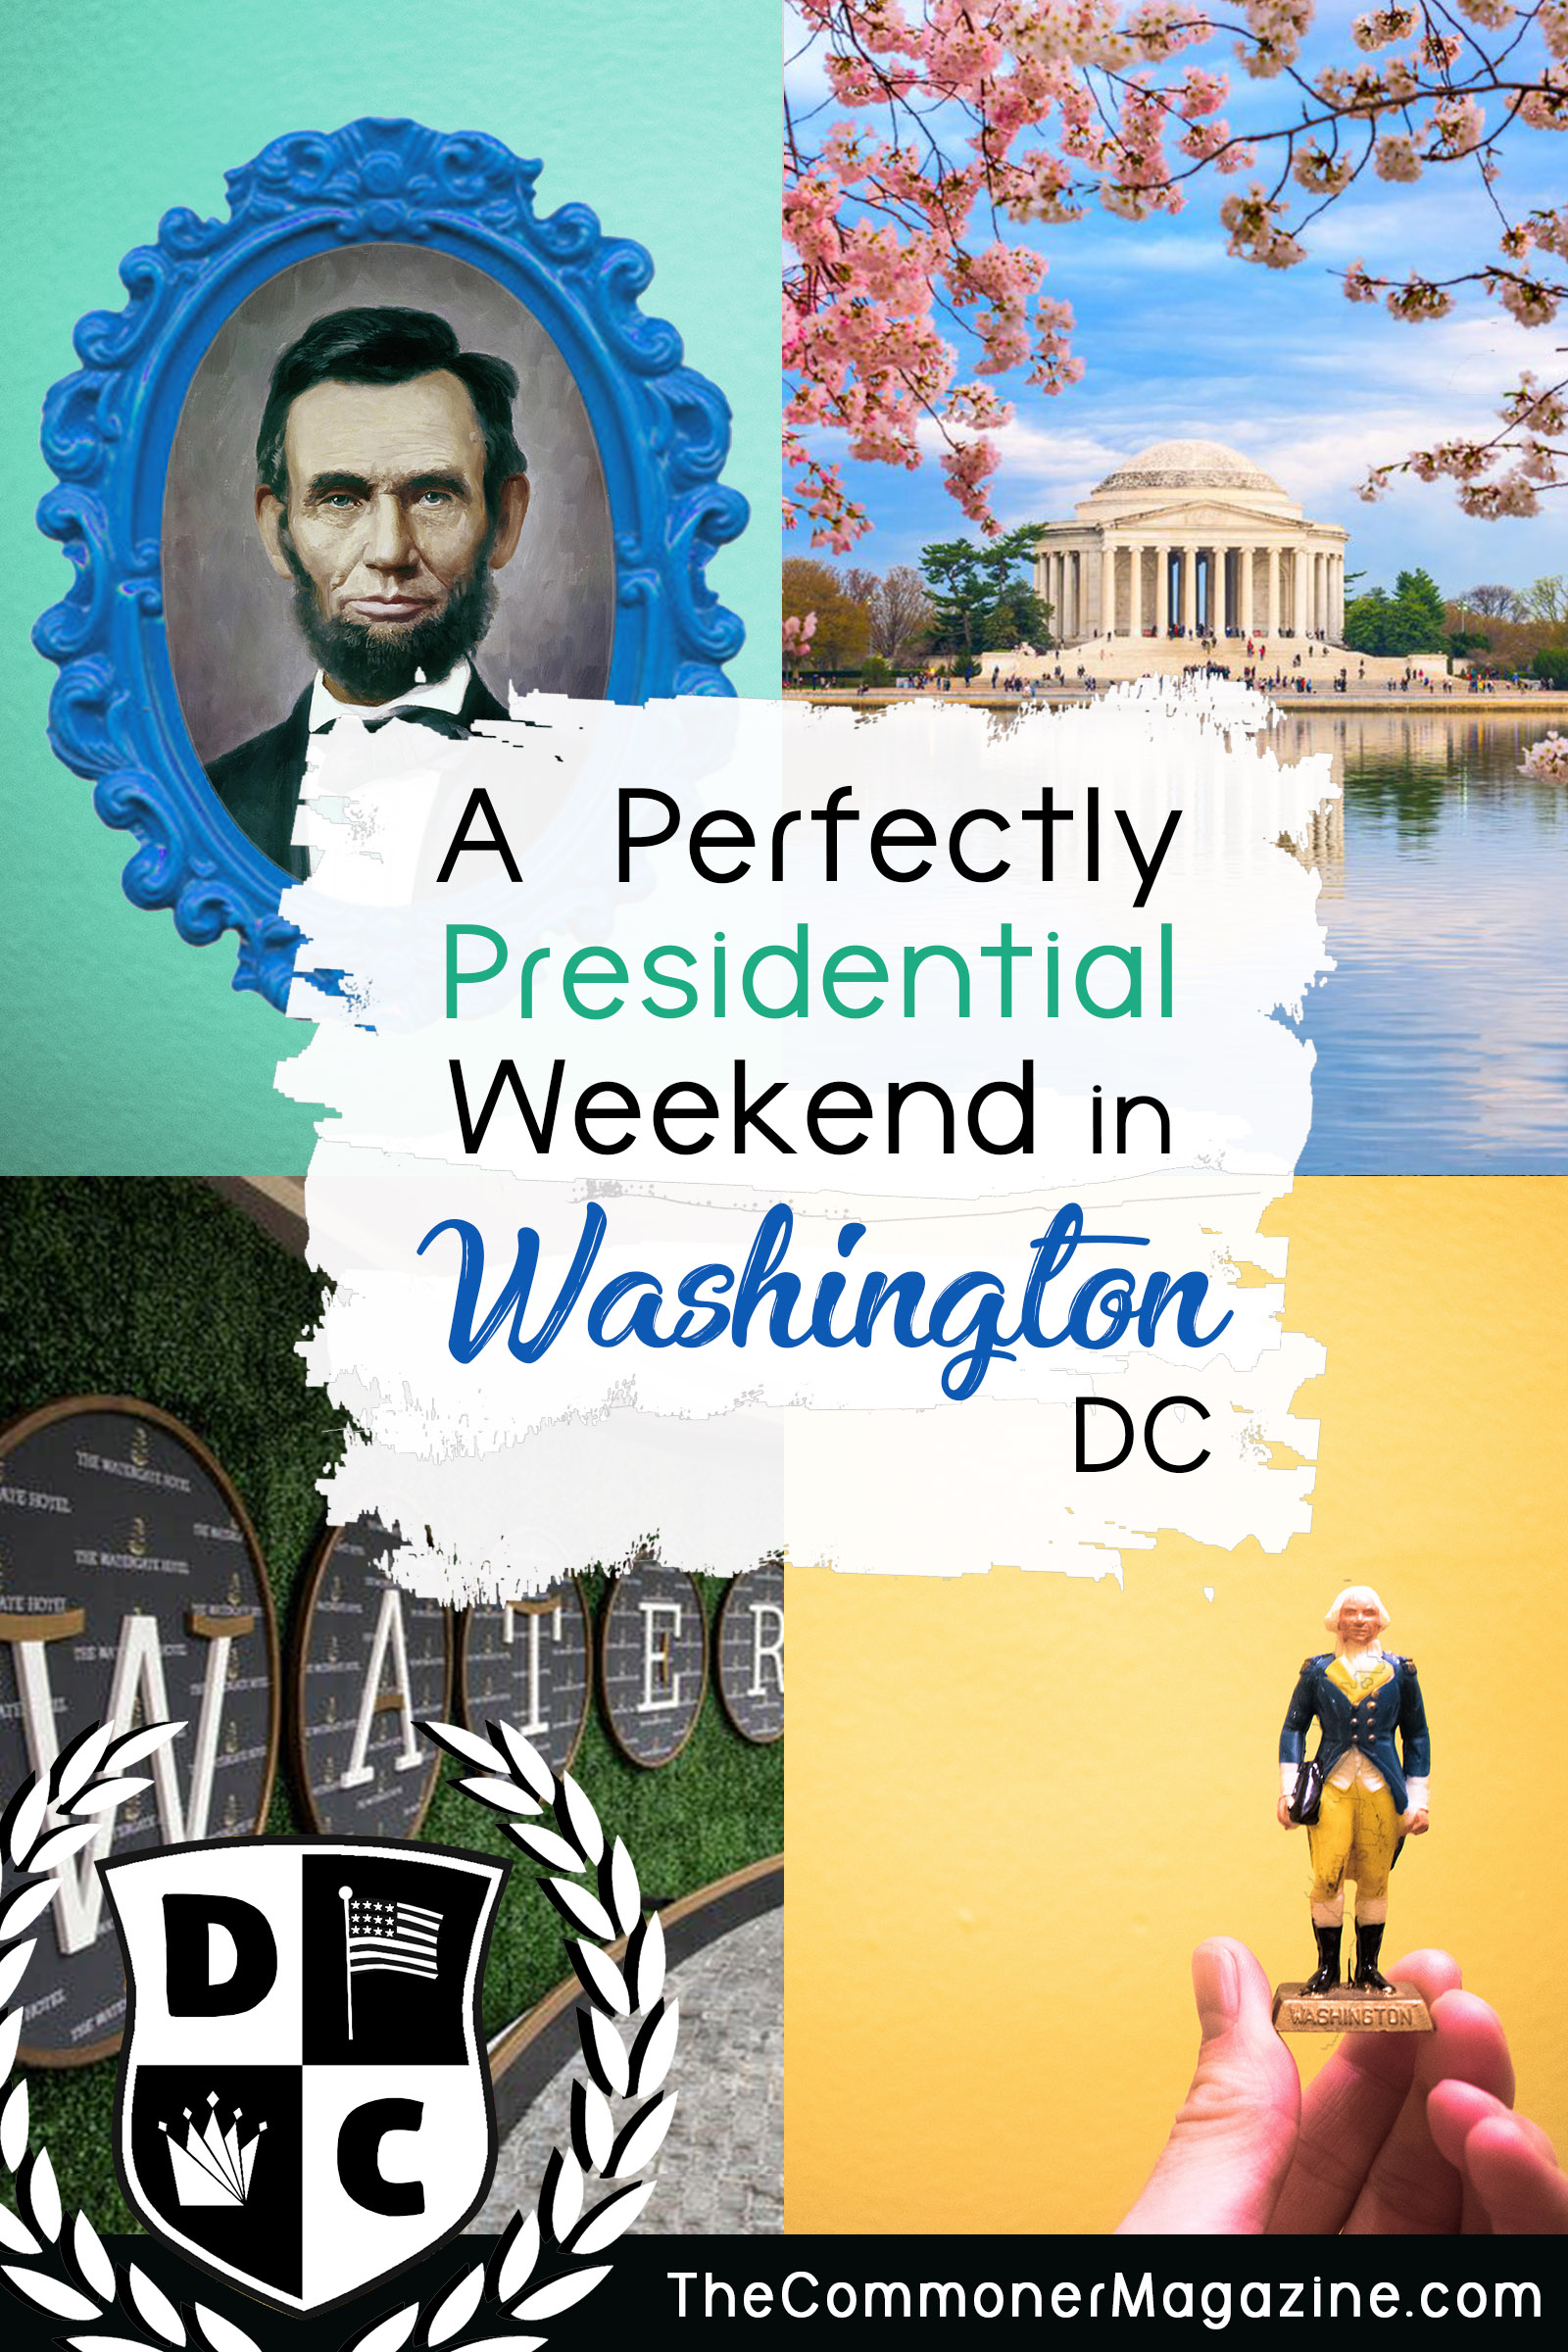 Does everyone like a theme?  If you are looking for something new to perform in Washington DC?  We've got you covered in a perfect presidential weekend in the capital.  Enjoy activities that go beyond the famous memorials of the President.  Commander's magazine full of travel tips from local experts.  #Washington DC #Tonston Washington Washington #Presidential #WaterGate #DC #WashingtonChurch #US